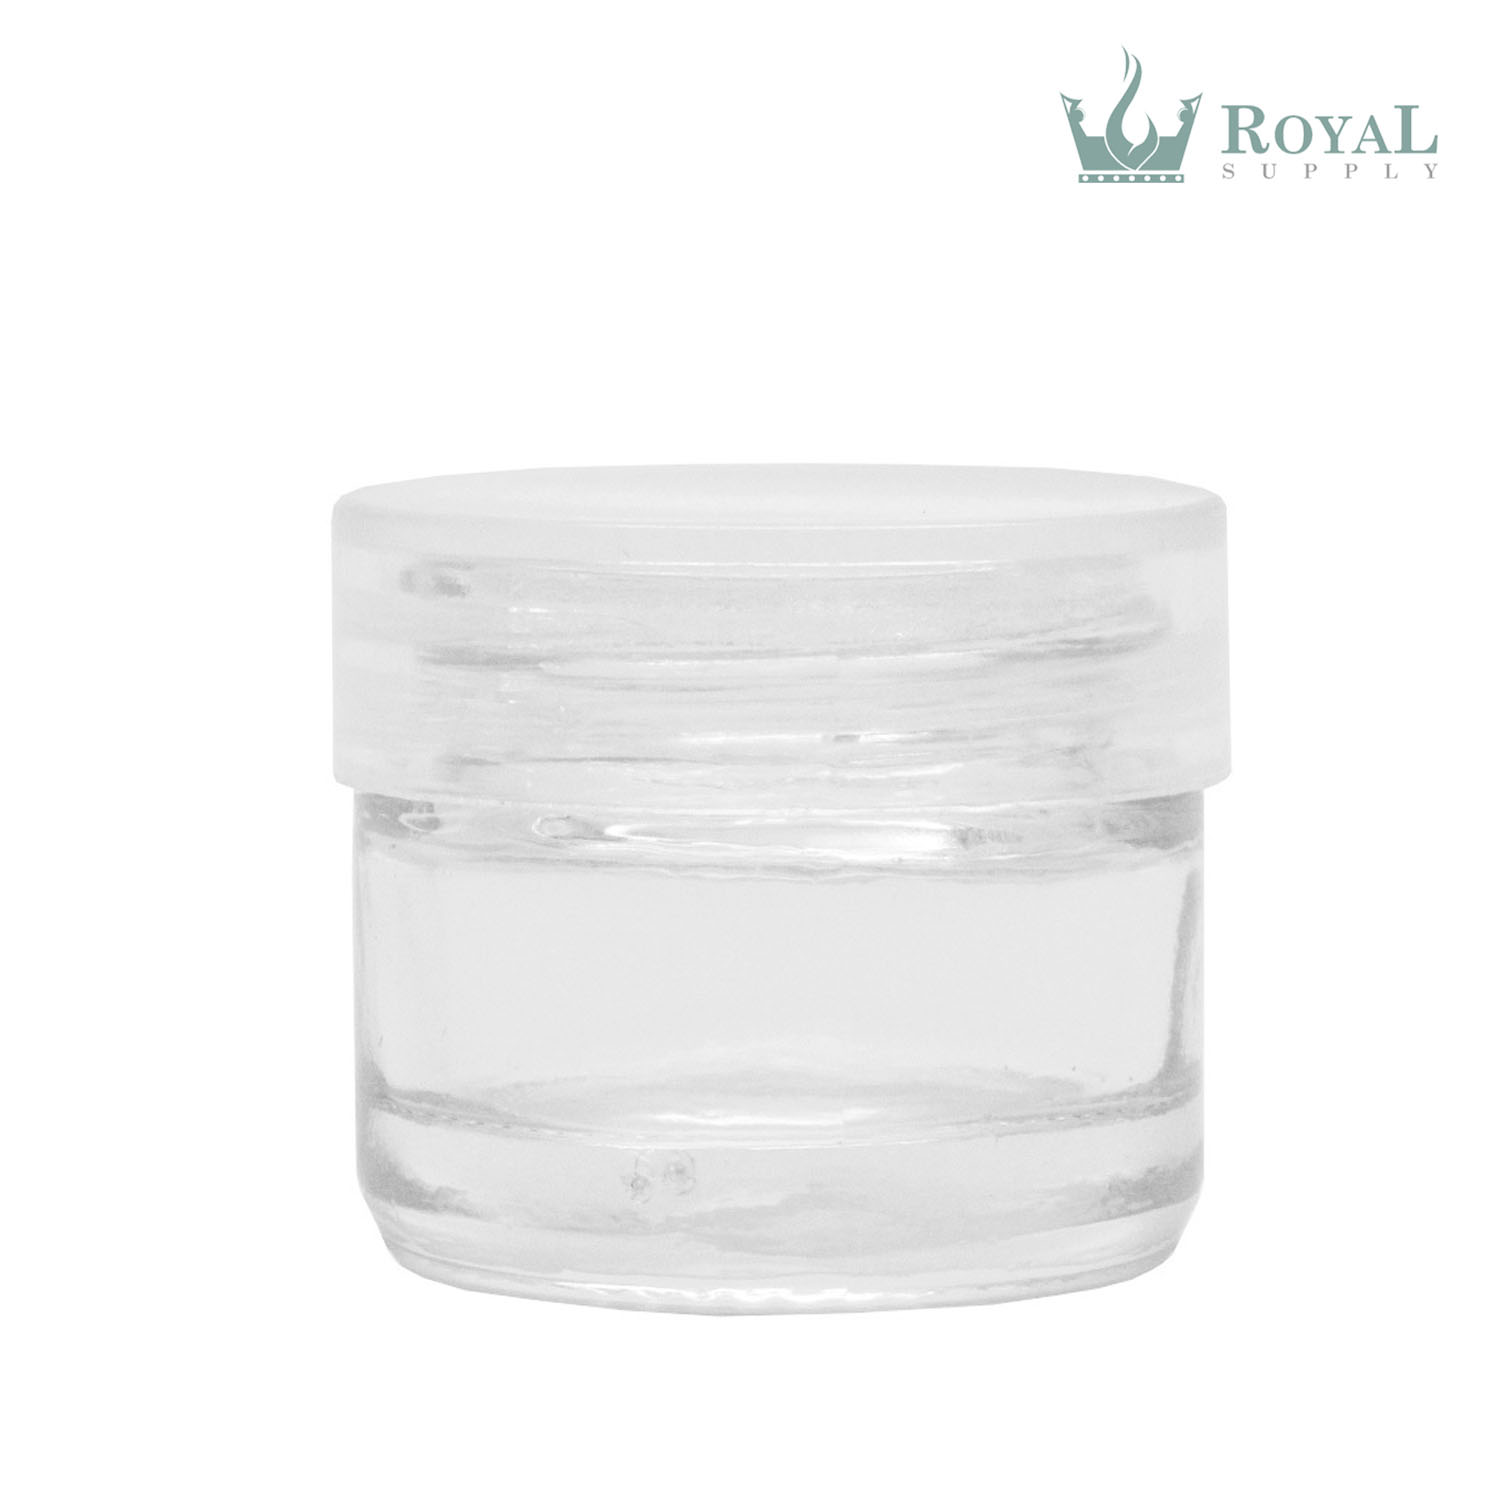 5ml Glass Concentrate Container with Screw Cap Lid